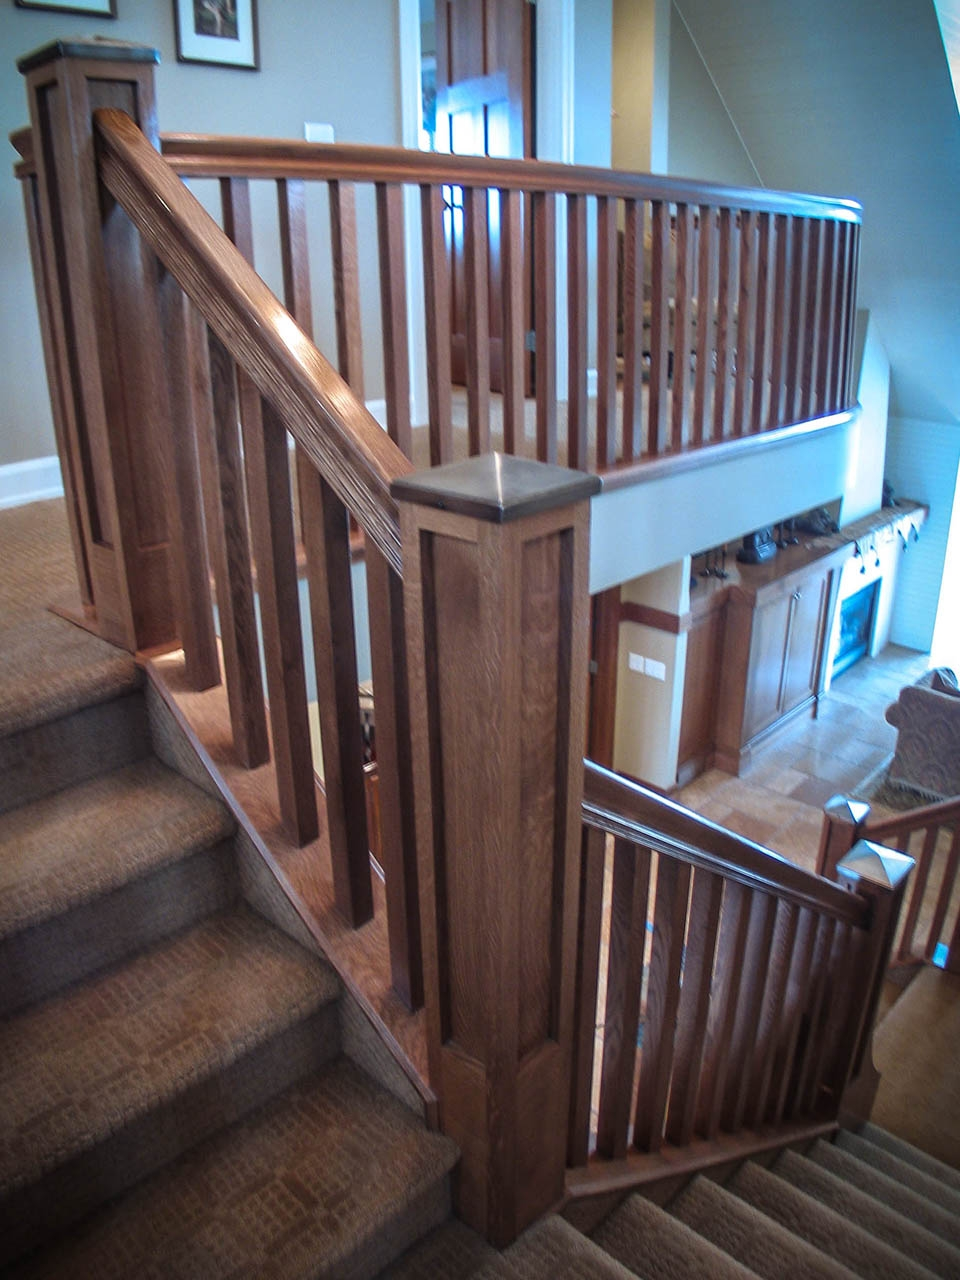 New Indoor Railings For Staircase Ballpark Estimate | Stair Railing Cost Per Linear Foot | Rod Railing | Stair Case | Pressure Treated | Average Cost | Wrought Iron Railings